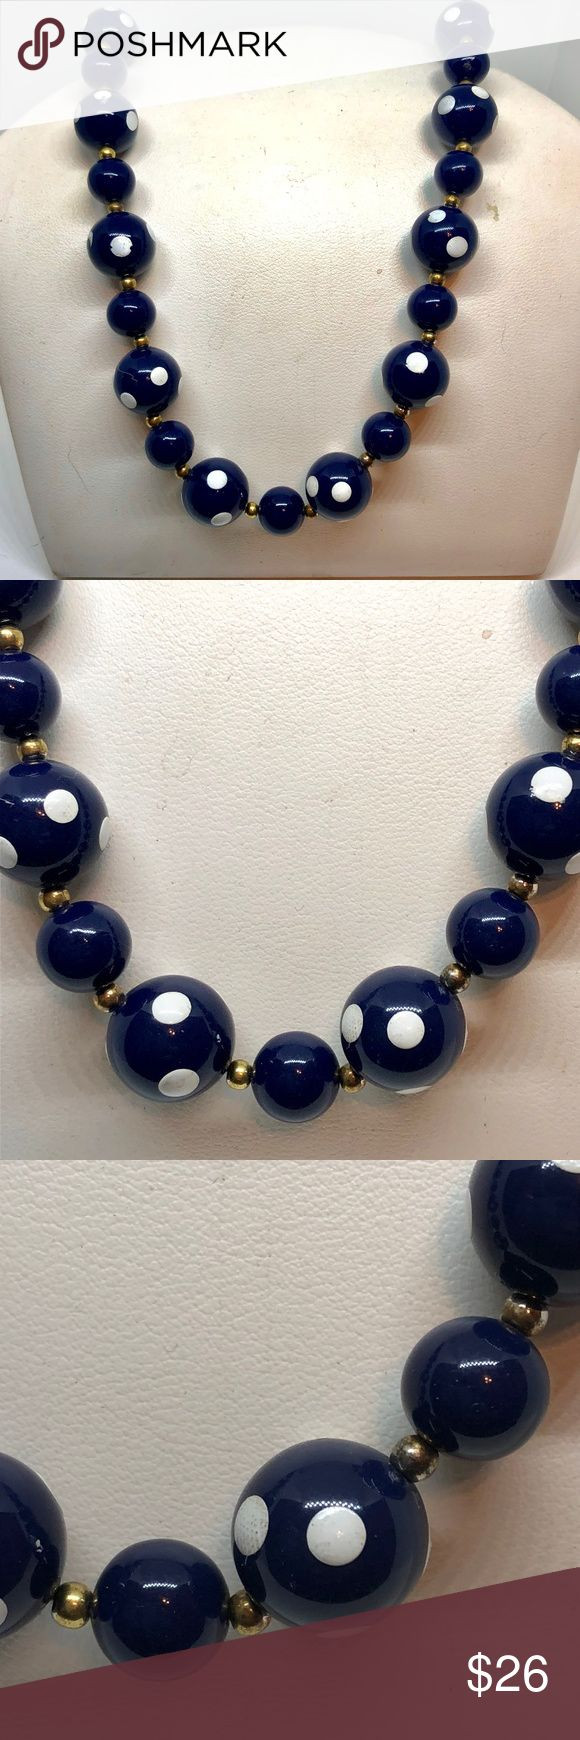 """Polka Dot Beaded Necklace True vintage polka dot beaded necklace. Navy blue plastic beads with pained white circle polka dots. Smaller navy beads are set in between the painted ones. Gold tone spacers separate each bead. Clasp is a hook closure. Beads are 13mm and 10mm in size. Necklace is 24"""".  Some white paint had chipped, in good vintage condition. Vintage Jewelry Necklaces"""